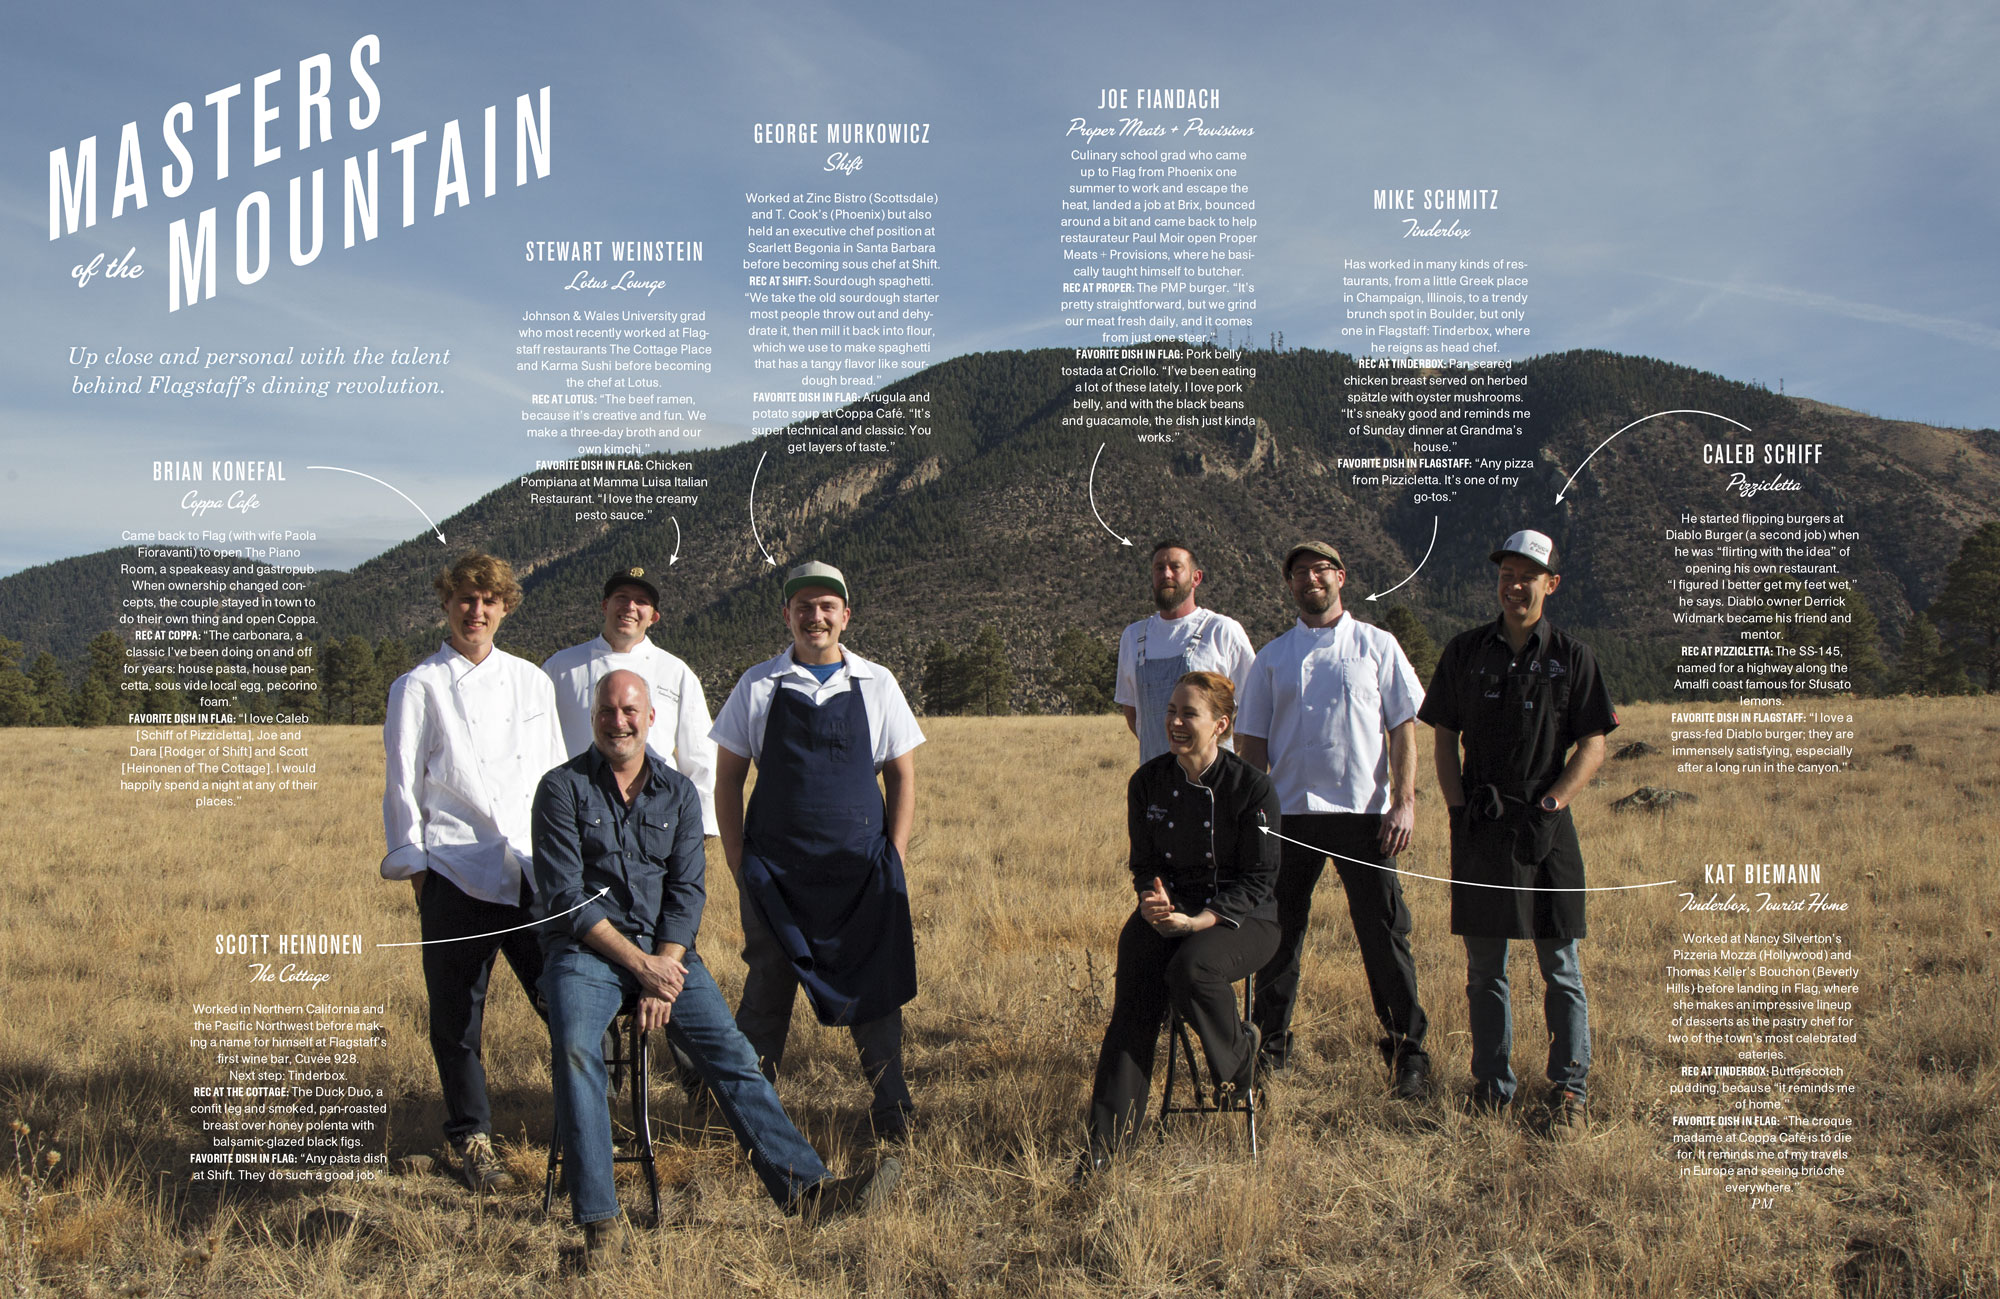 Masters of the Mountain - Up close and personal with the talent behind Flagstaff's dining revolution